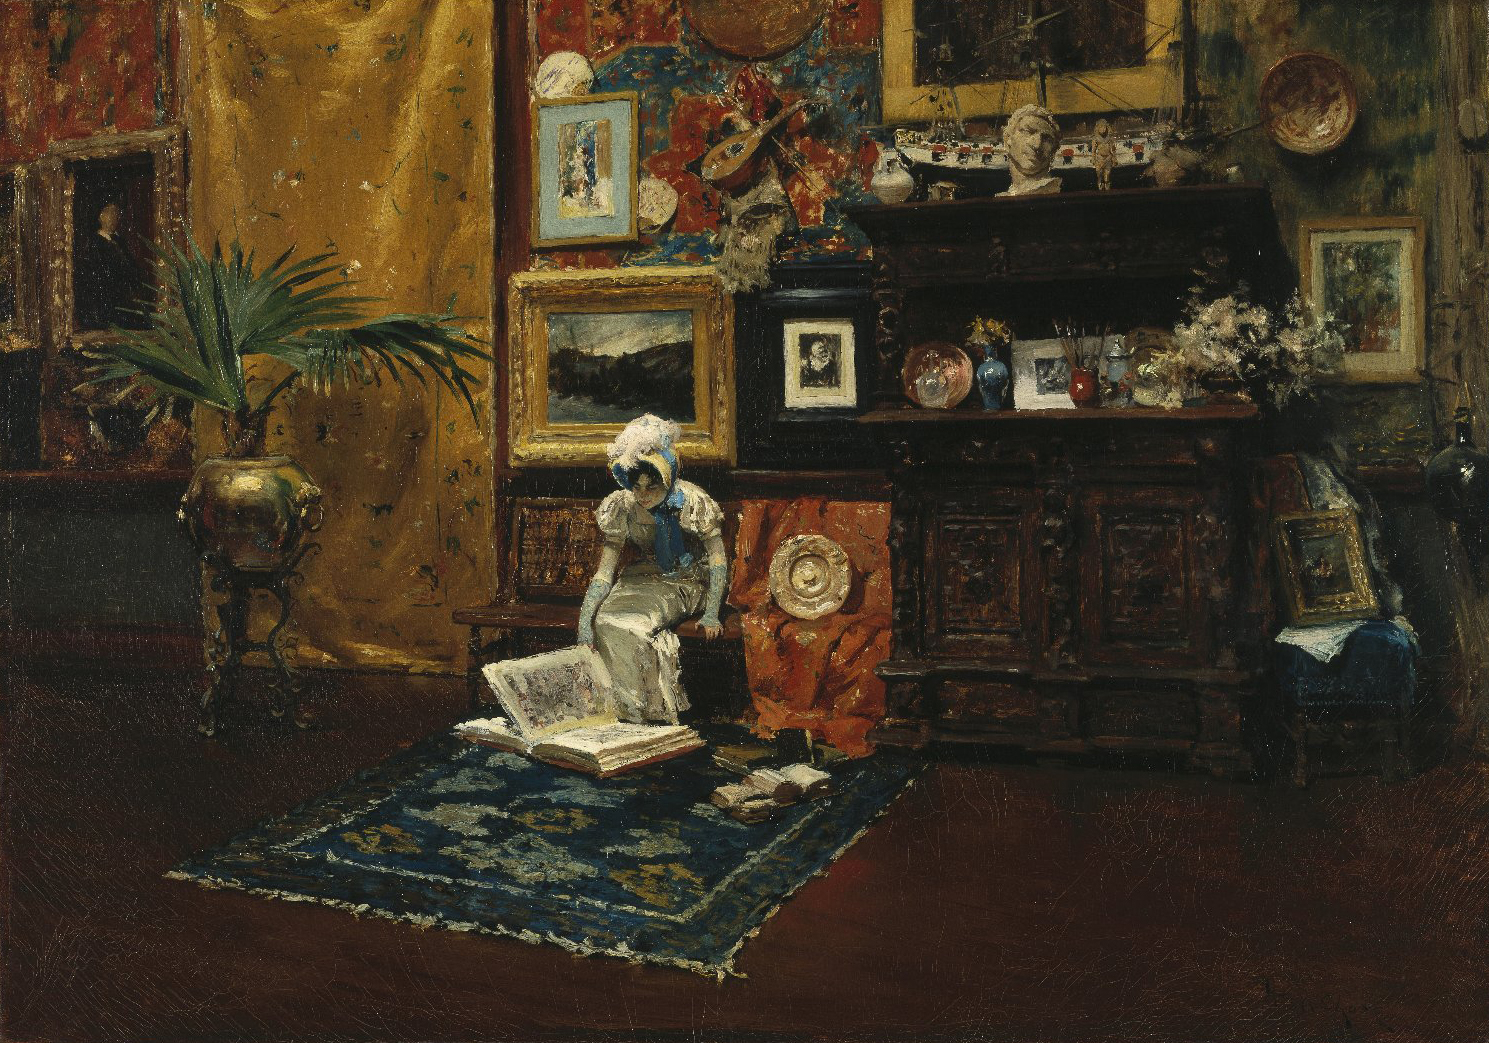 an analysis of the tenth street studio by william merritt chase Interior of the artists studio aka the tenth street - william merritt chase interior of the artists studio aka the tenth street - william merritt chase.